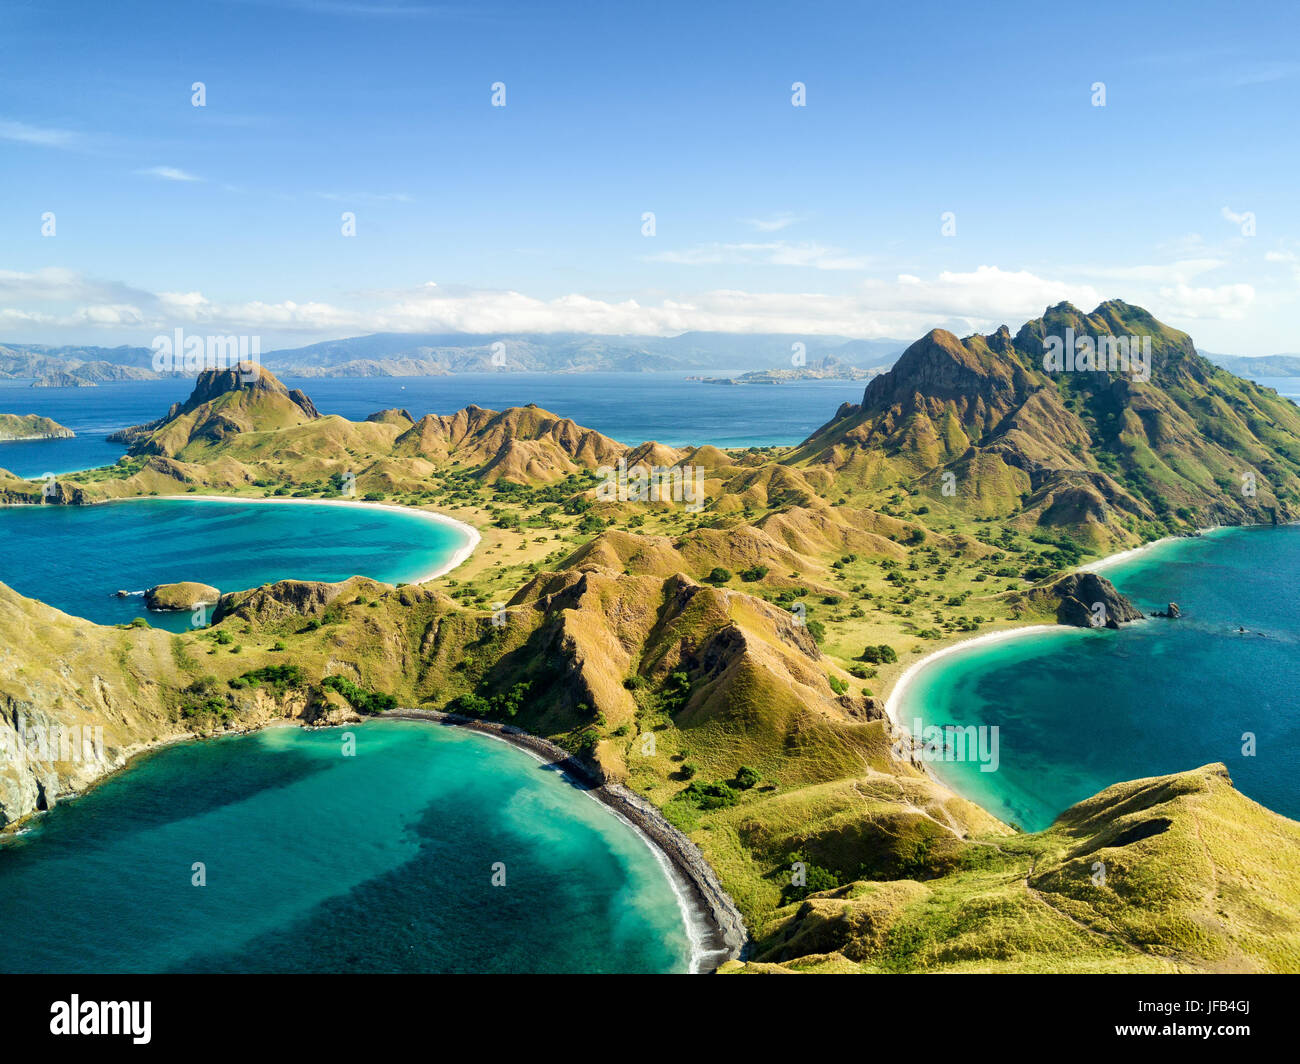 Aerial view of Pulau Padar island in between Komodo and Rinca Islands near Labuan Bajo in Indonesia. - Stock Image